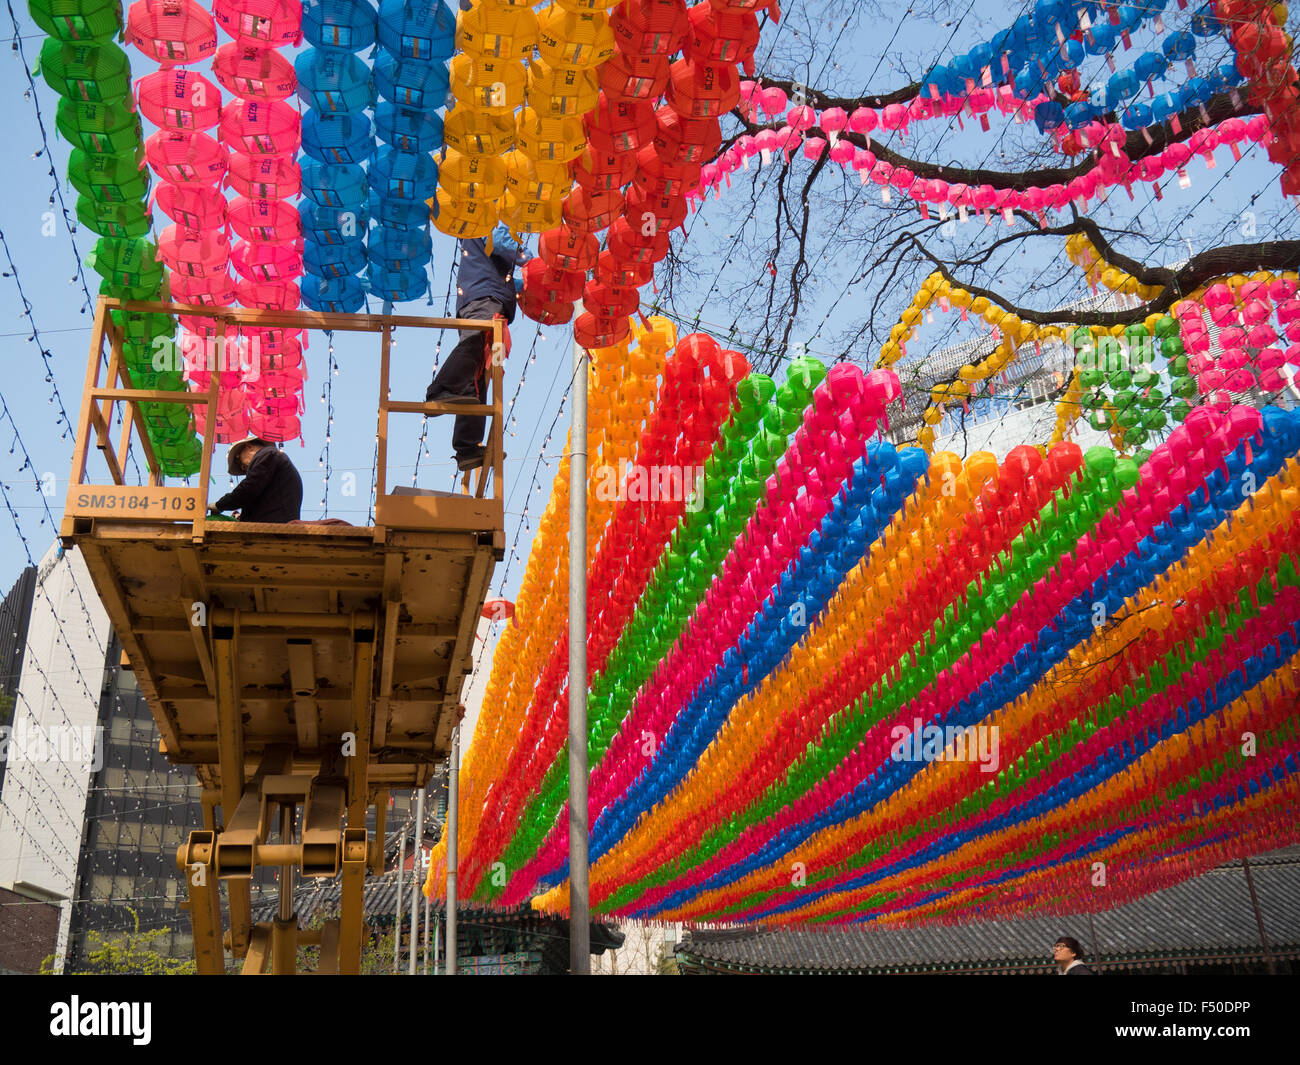 Workers hang colorful lanterns for Buddha's birthday at the Jogyesa temple in Seoul, South Korea - Stock Image